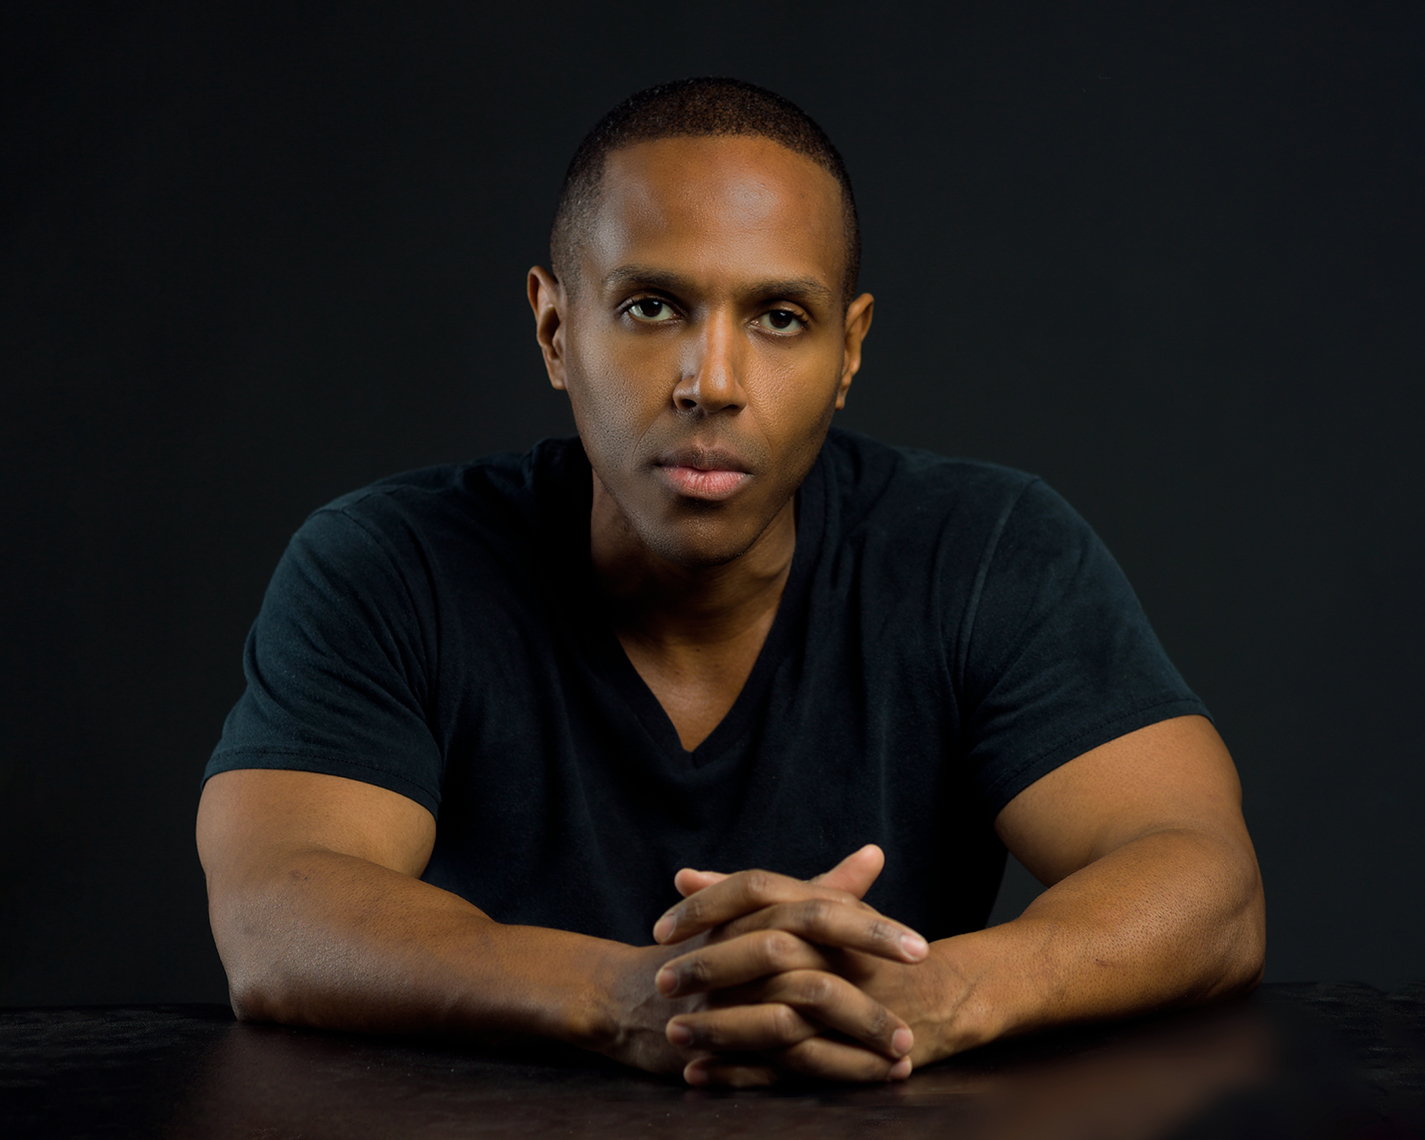 headshot-actor-artist-african-american-male